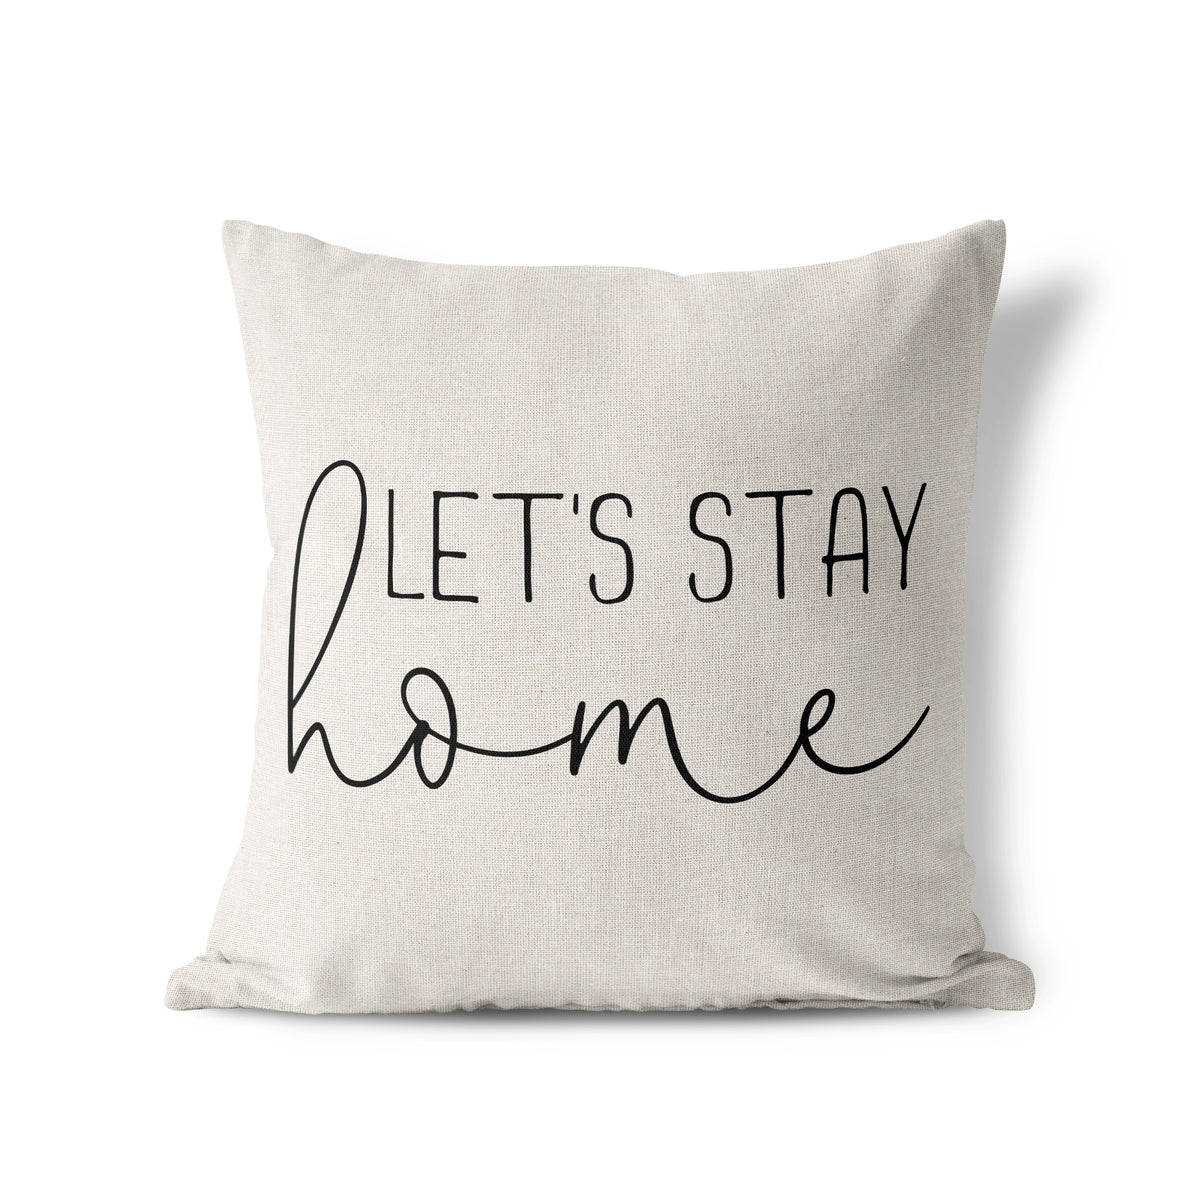 Let's Stay Home - Pillow Cover